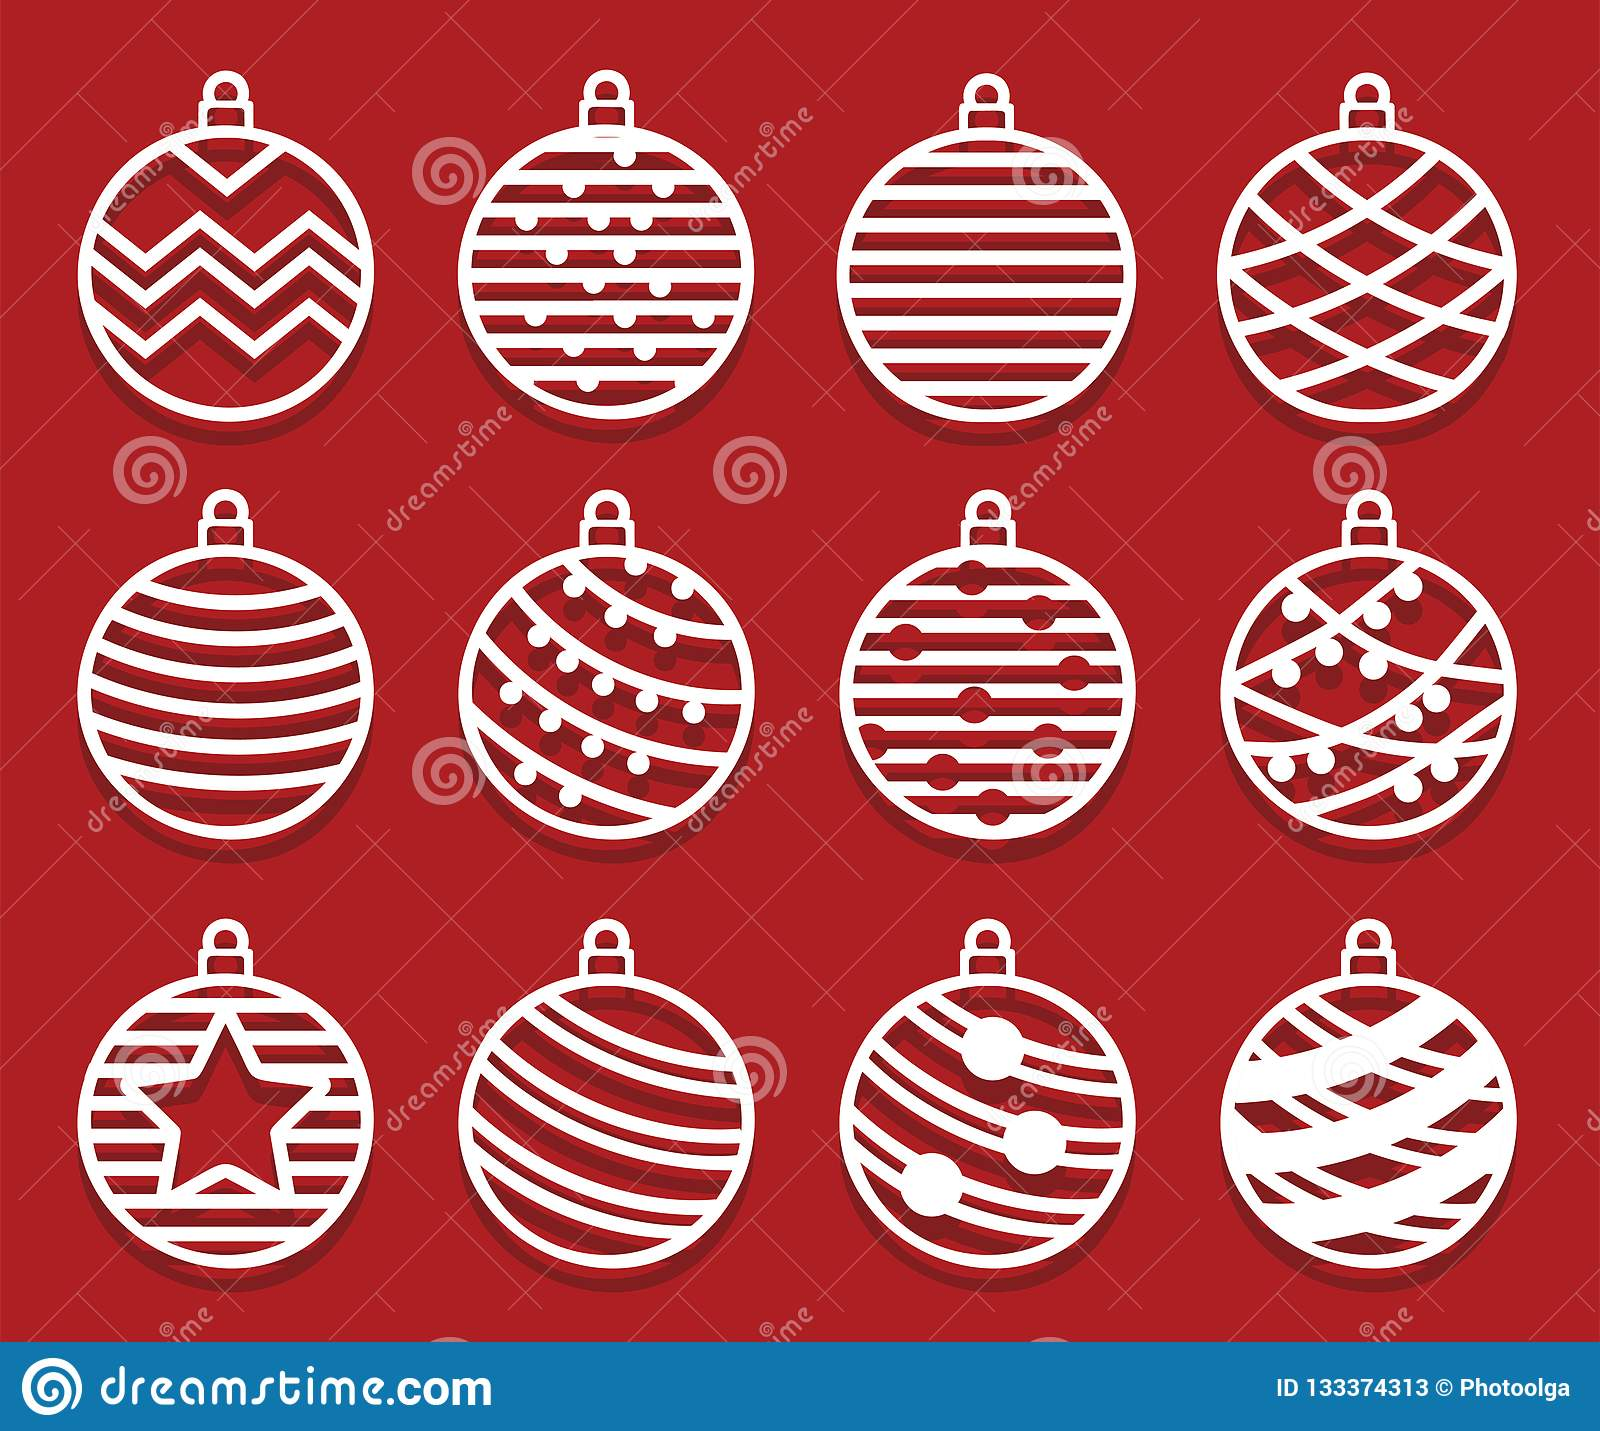 christmas balls for laser cutting new year card simple abstact shapes set of